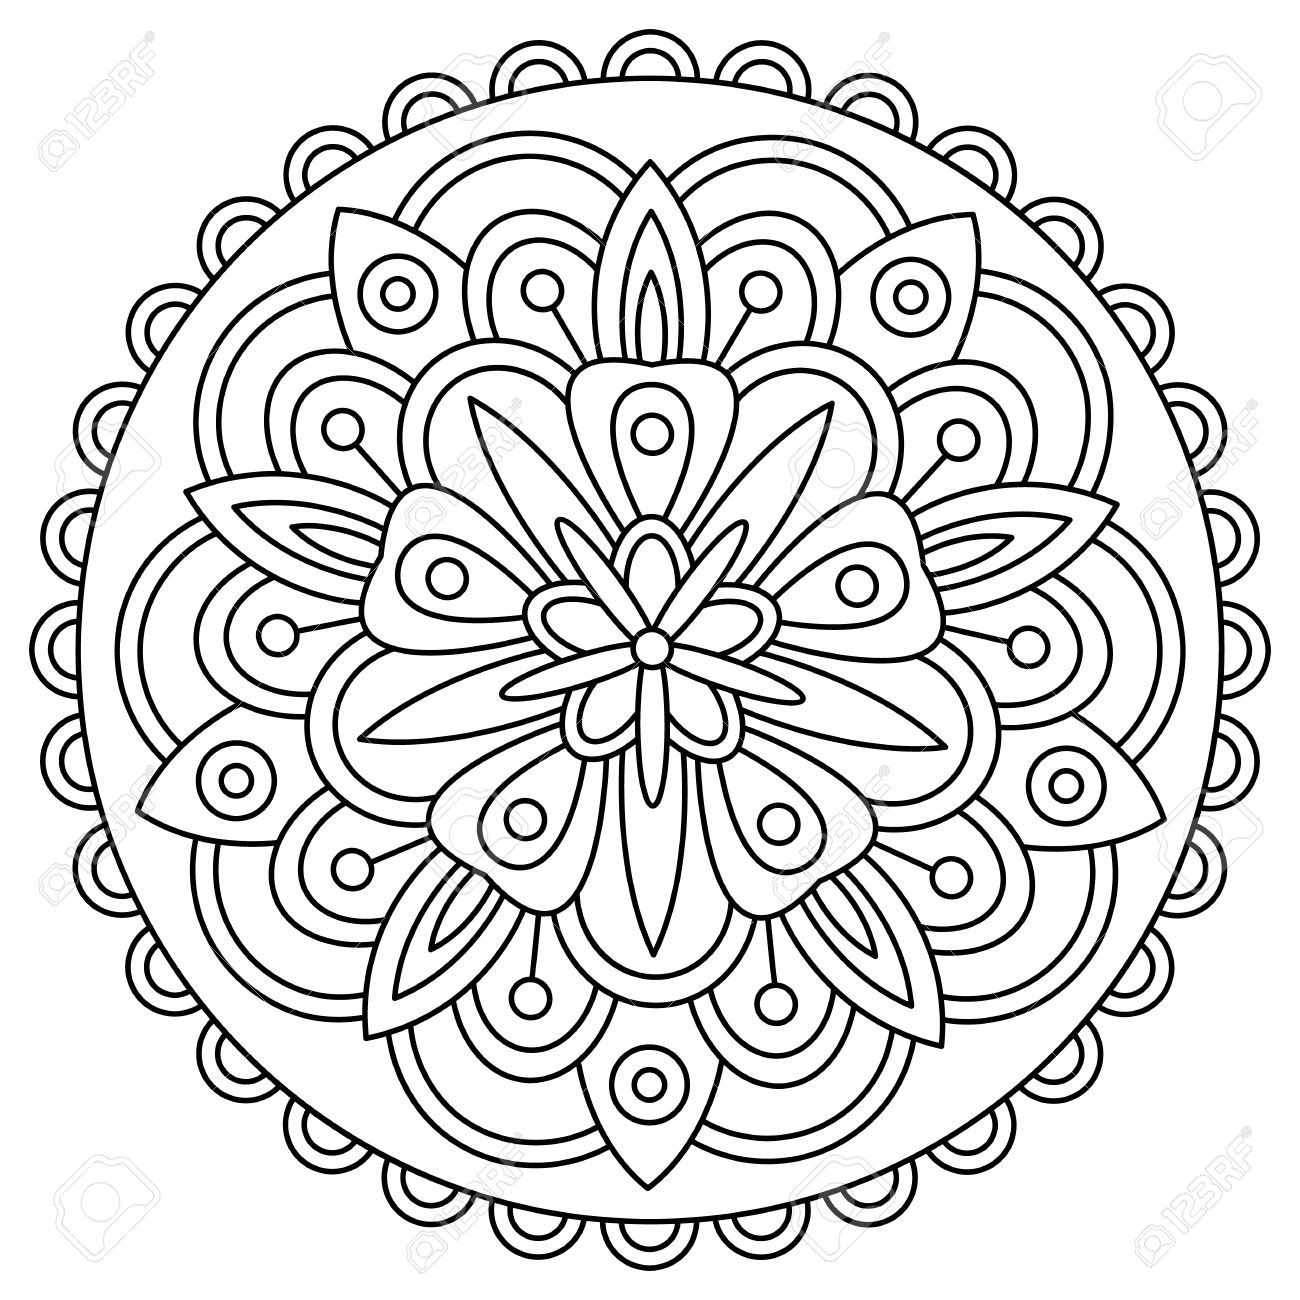 Mandala Coloring Page Vector Illustration Stock